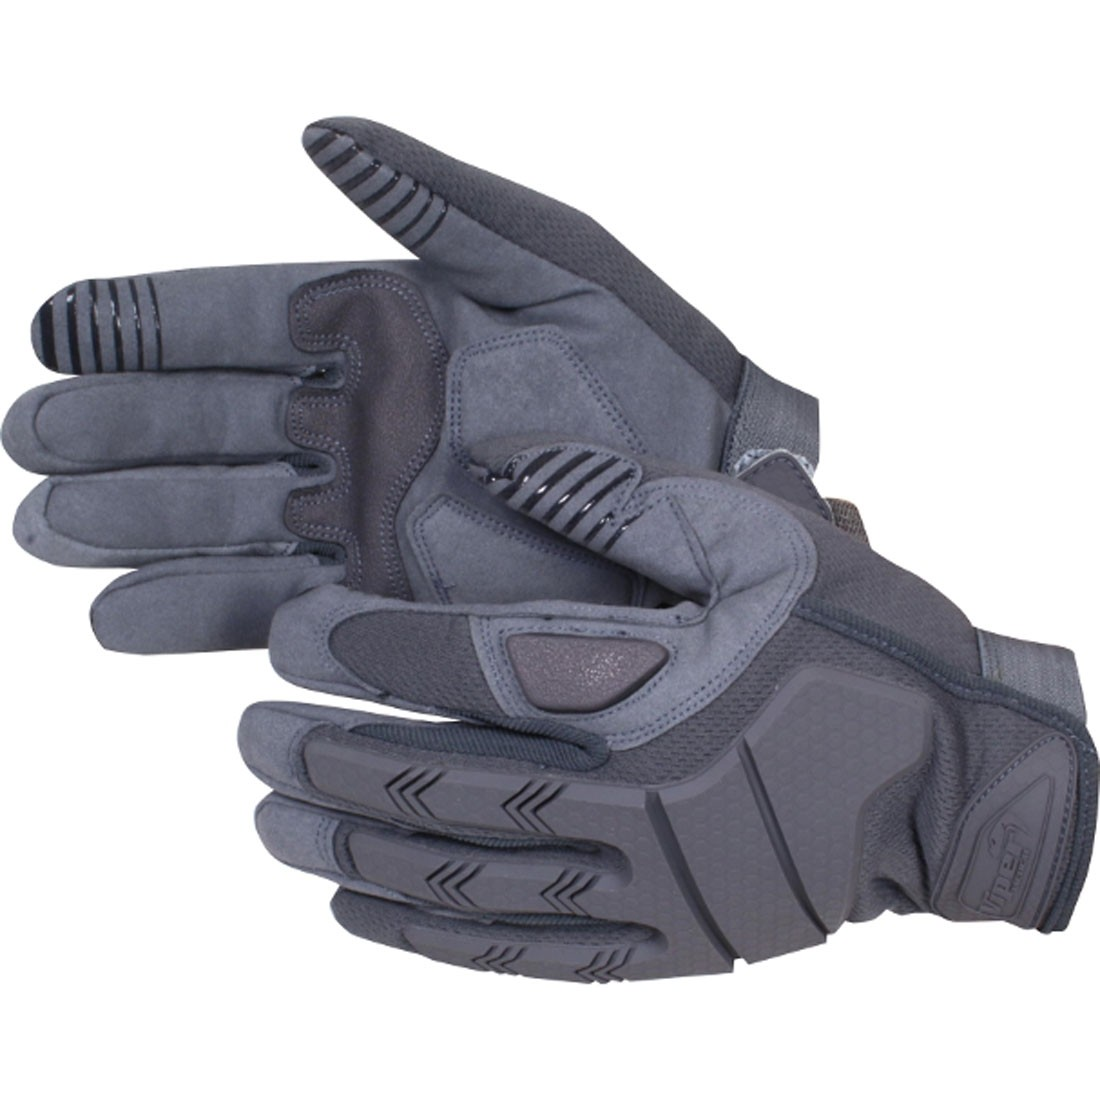 Viper Recon Gloves Titanium Grey Large